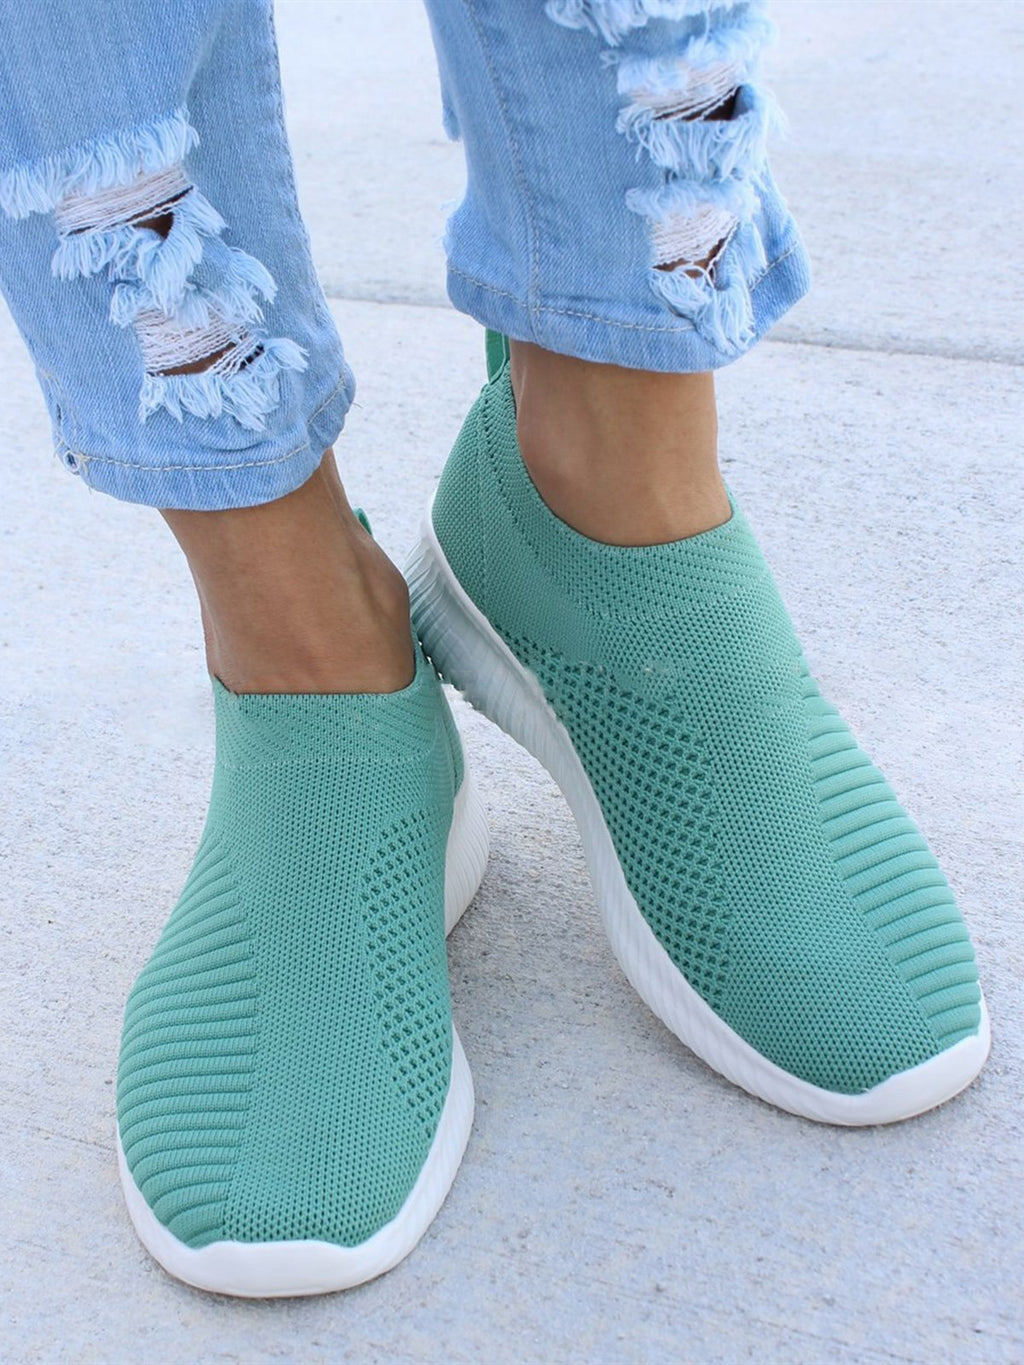 Unisex All Season Elastic Cloth Sneakers